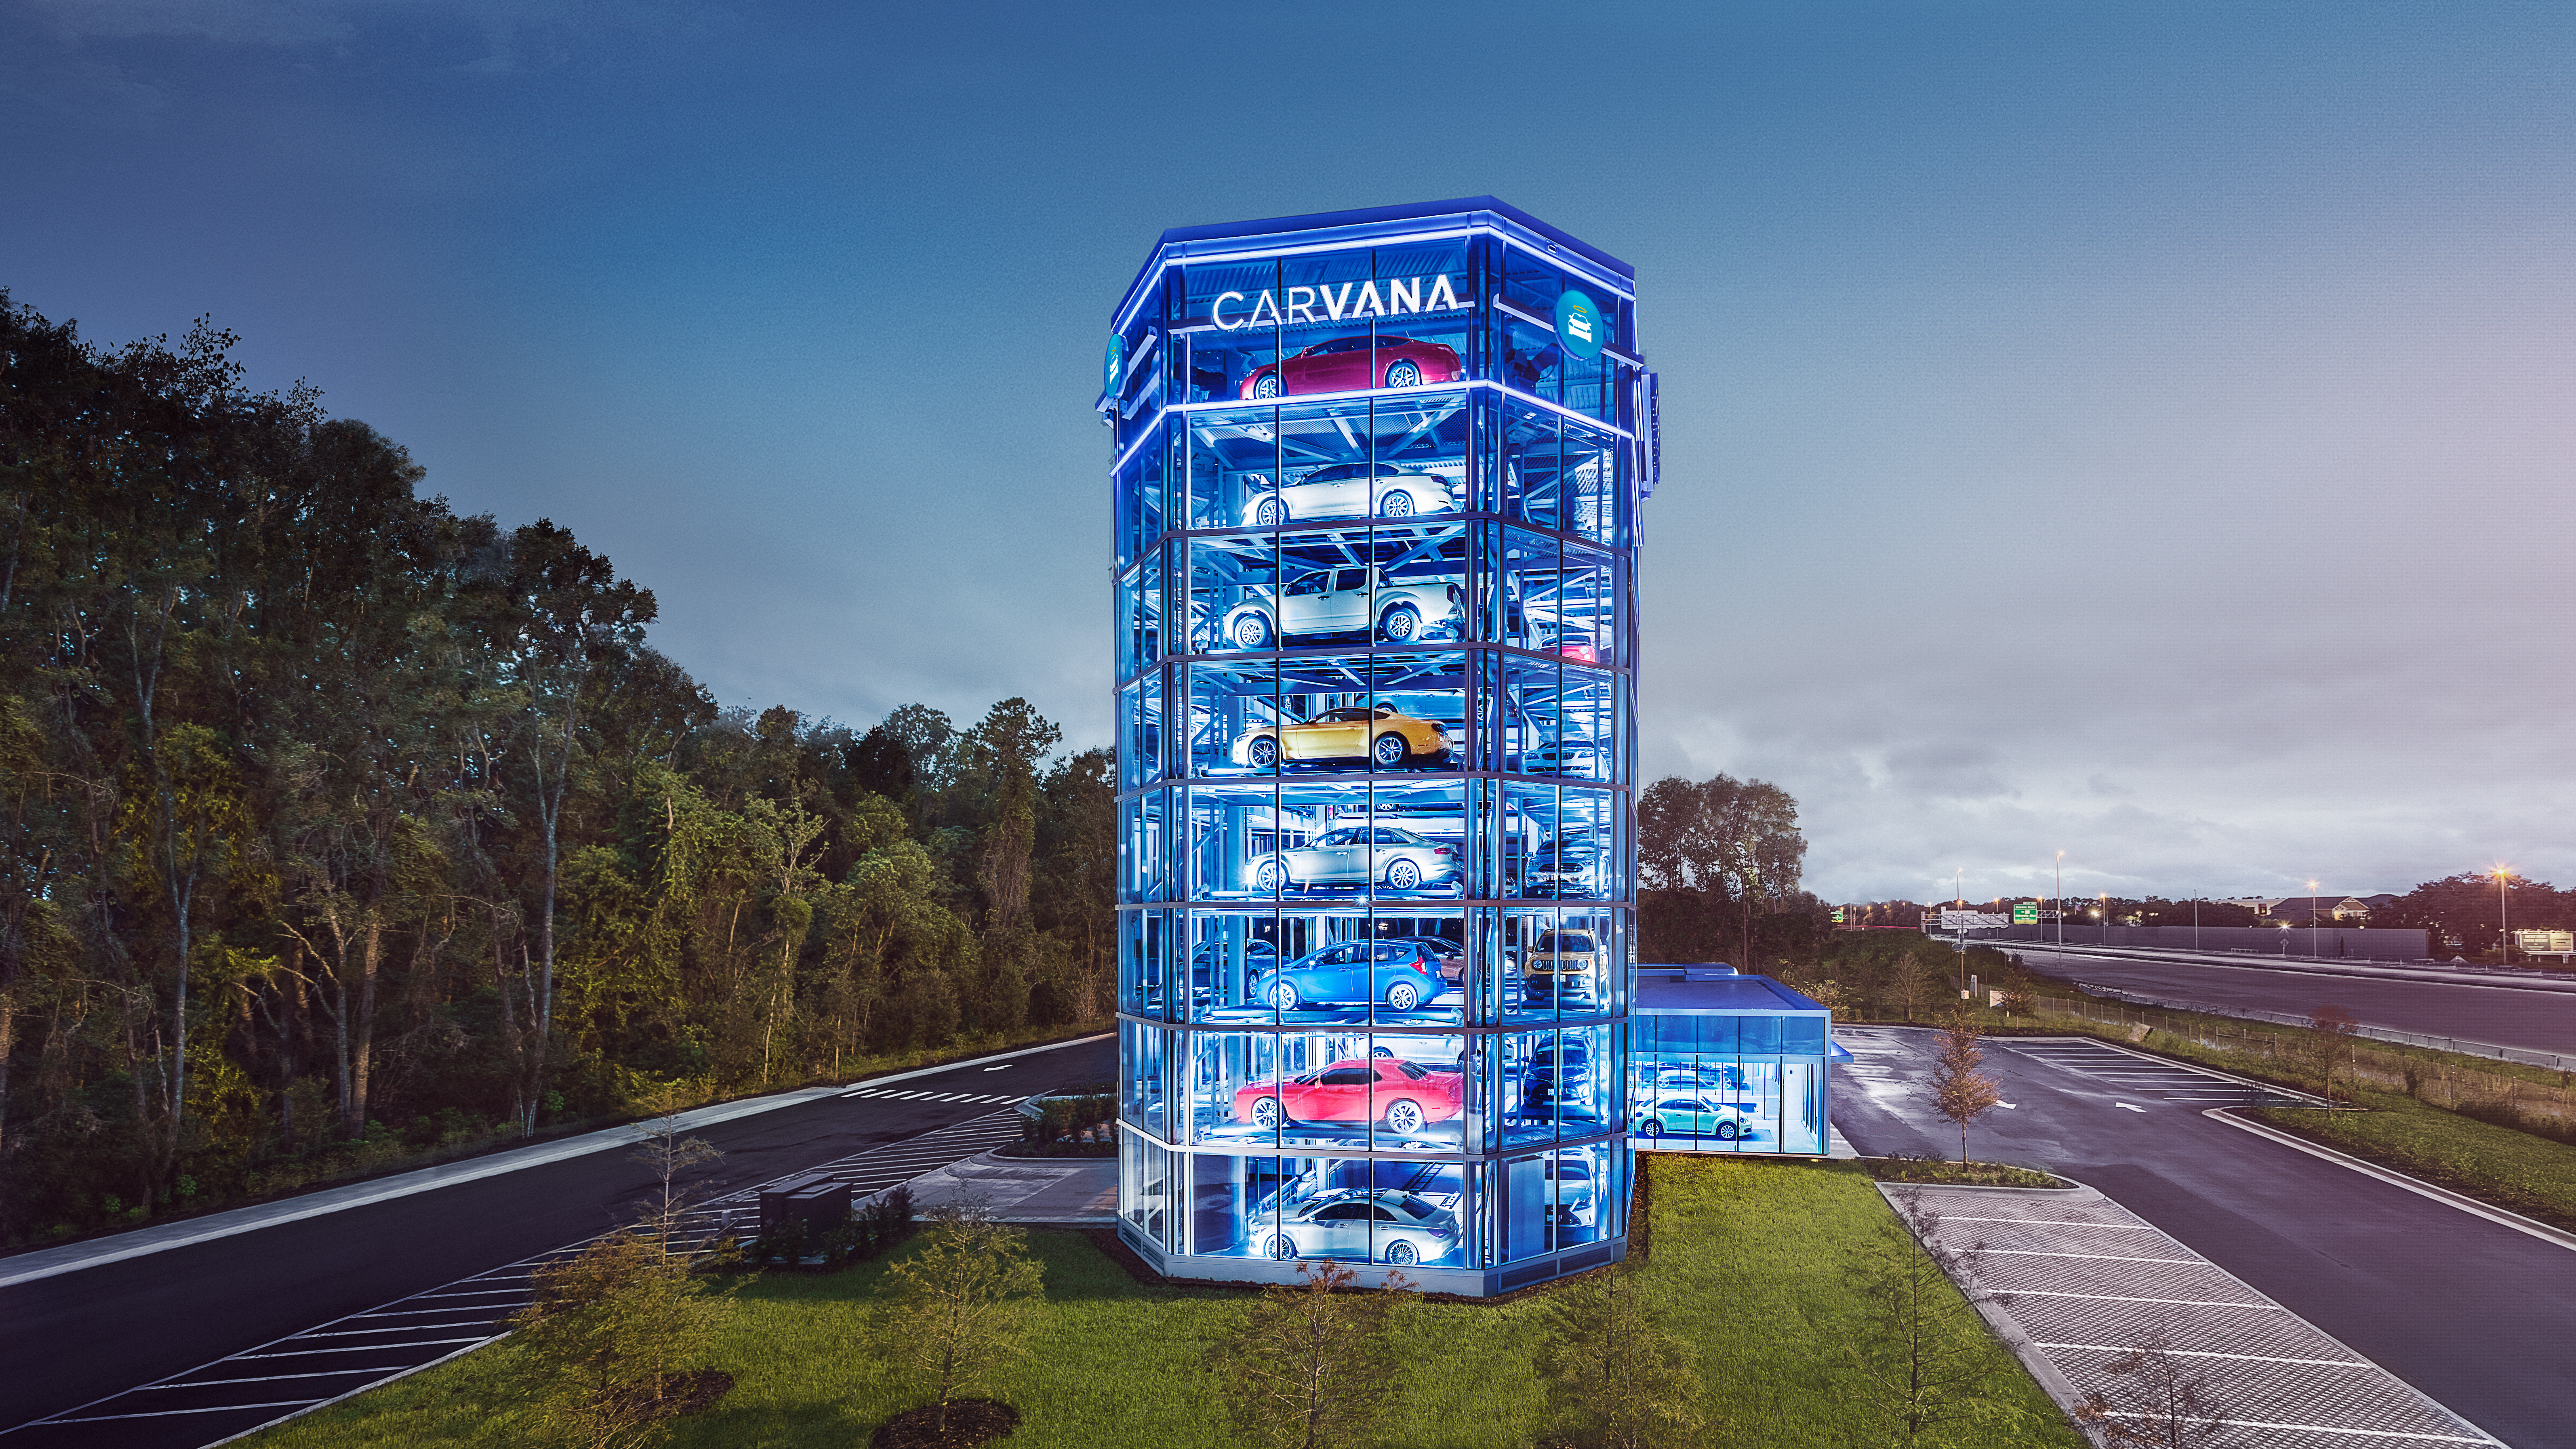 Armoured Vehicles Latin America ⁓ These Carvana Locations